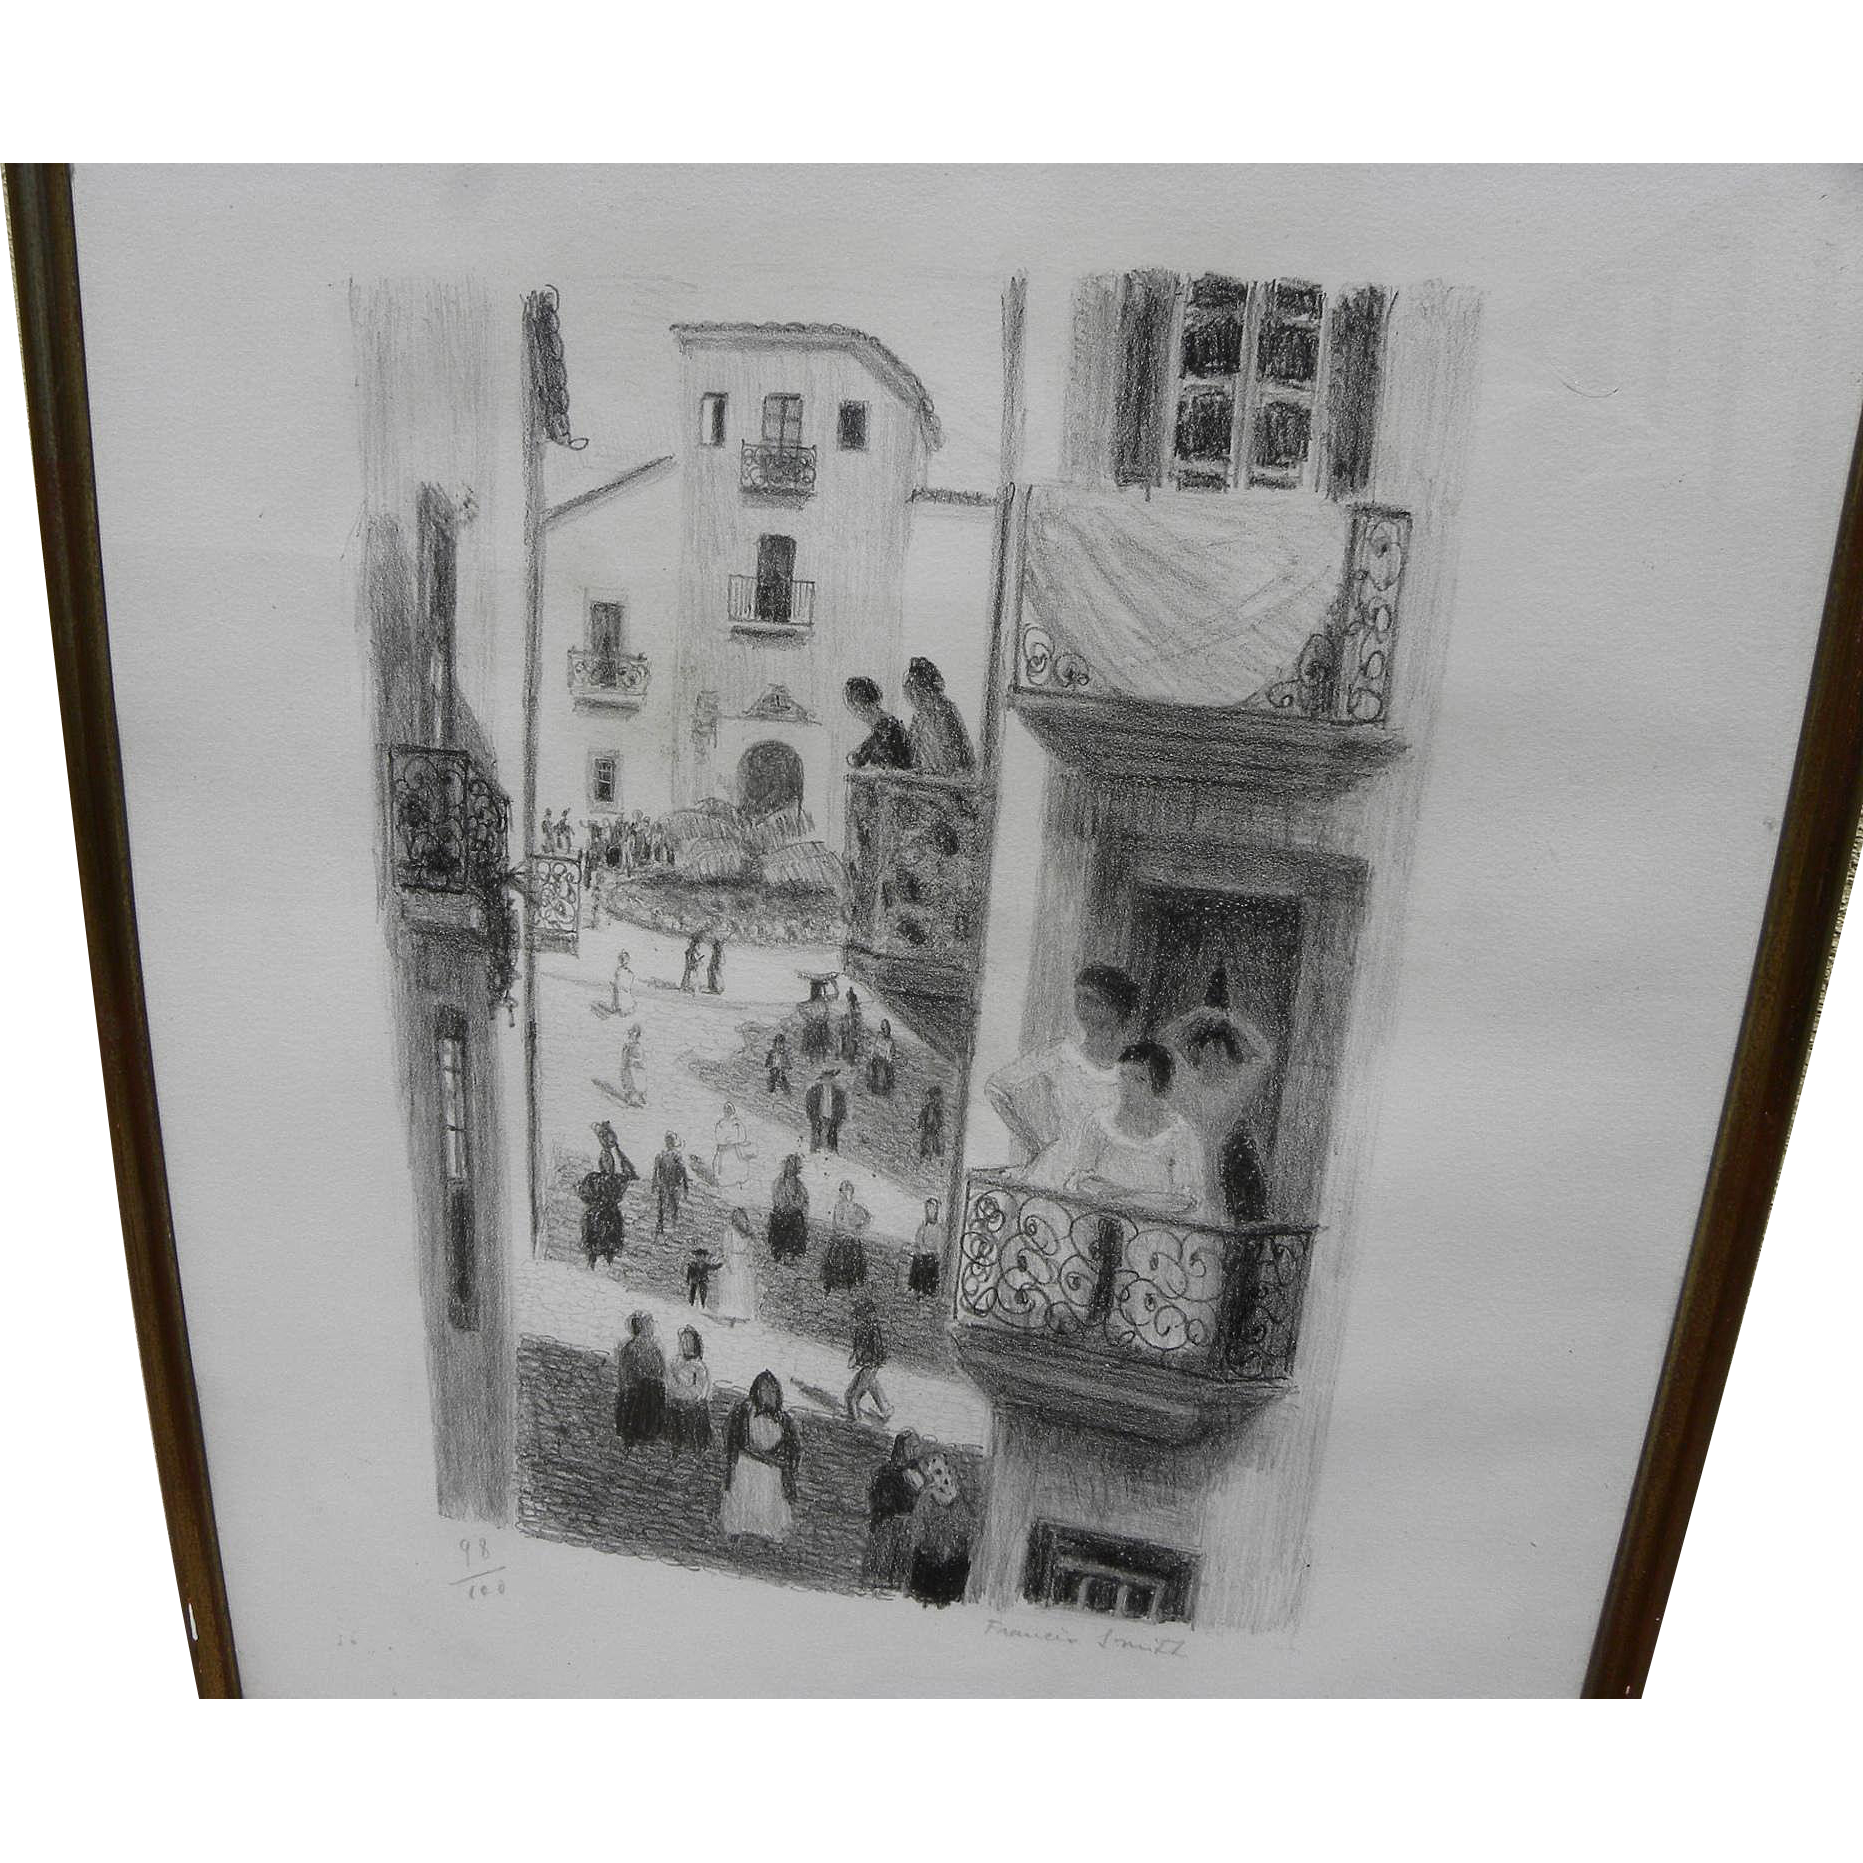 FRANCIS SMITH (1881-1961) pencil signed limited edition lithograph of Portuguese street scene by major naive artist